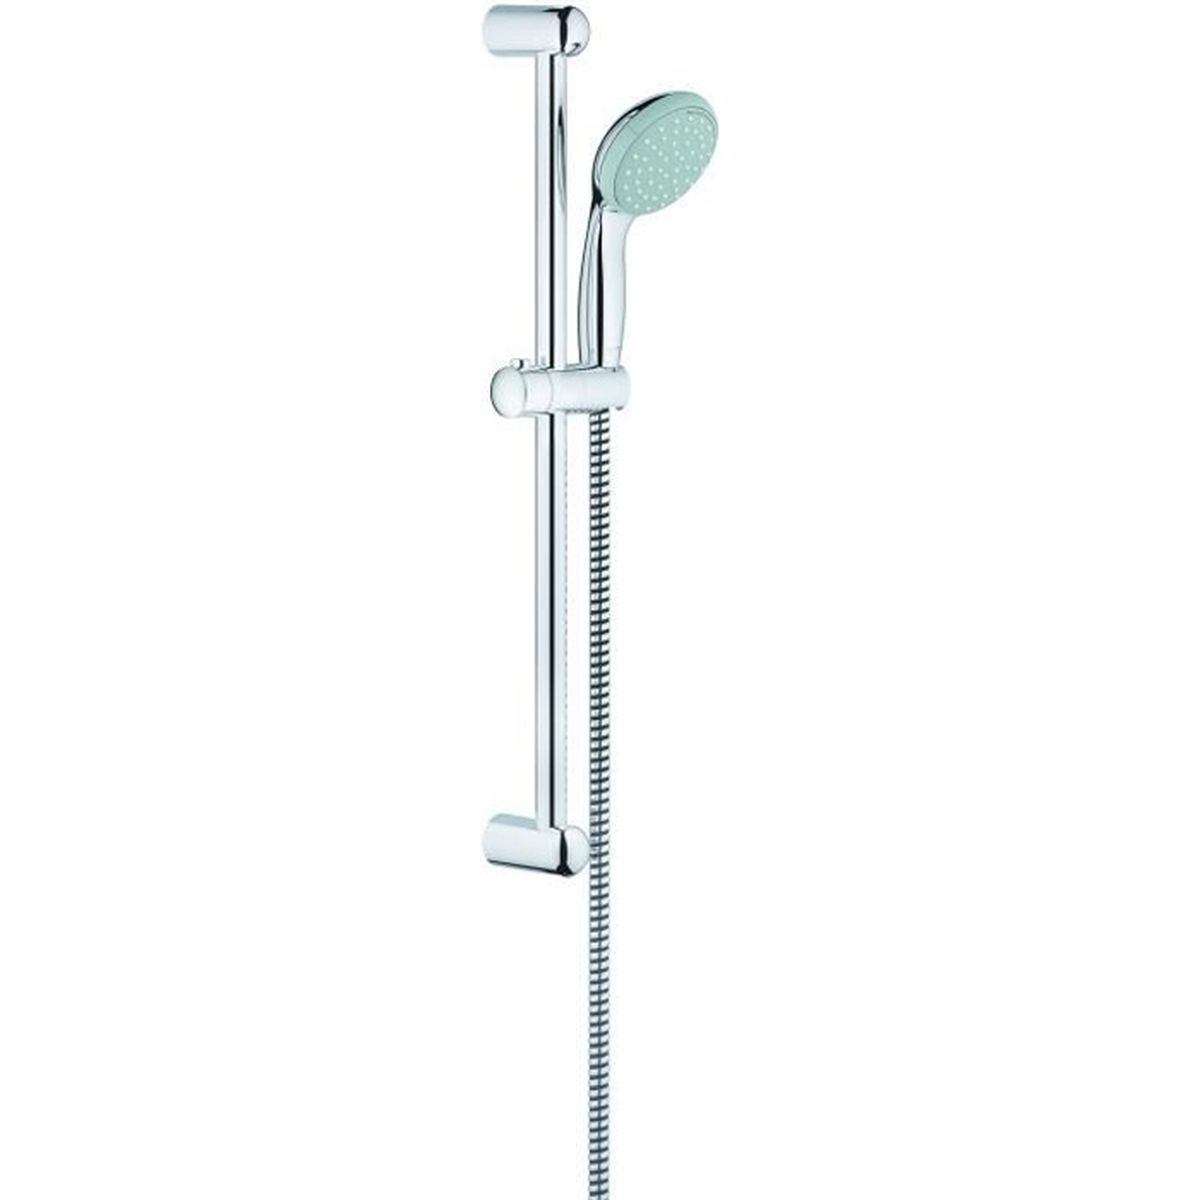 grohe ensemble de douche tempesta 27598000 achat vente colonne de douche ensemble de douche. Black Bedroom Furniture Sets. Home Design Ideas